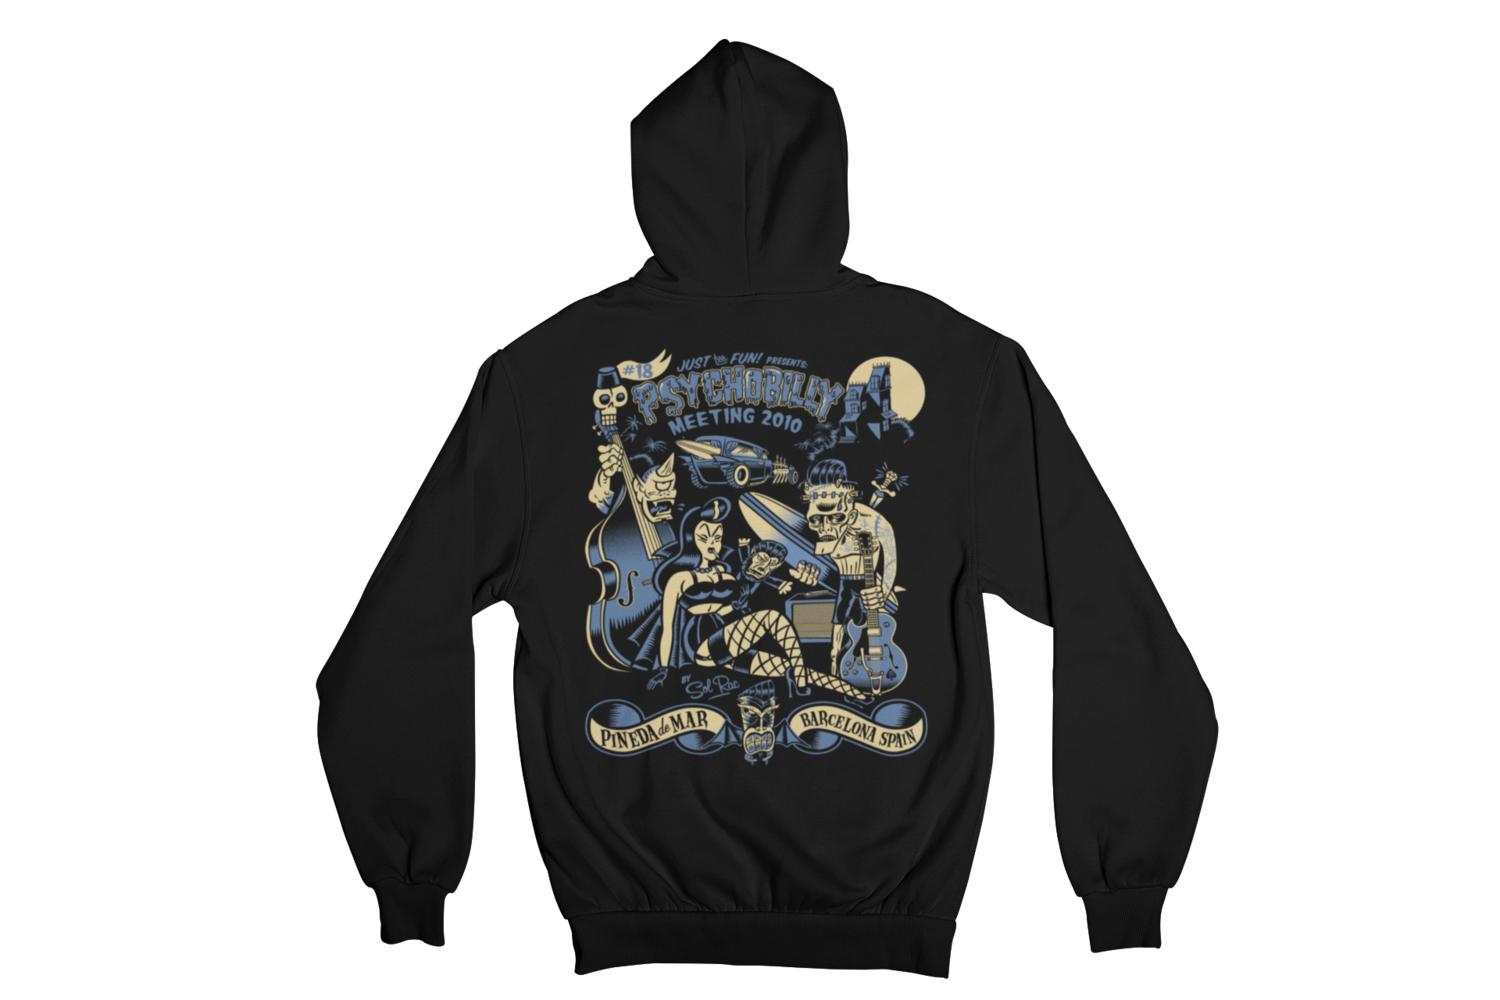 PSYCHOBILLY MEETING 2010 Hoodie ZIP by SOLRAC MEN